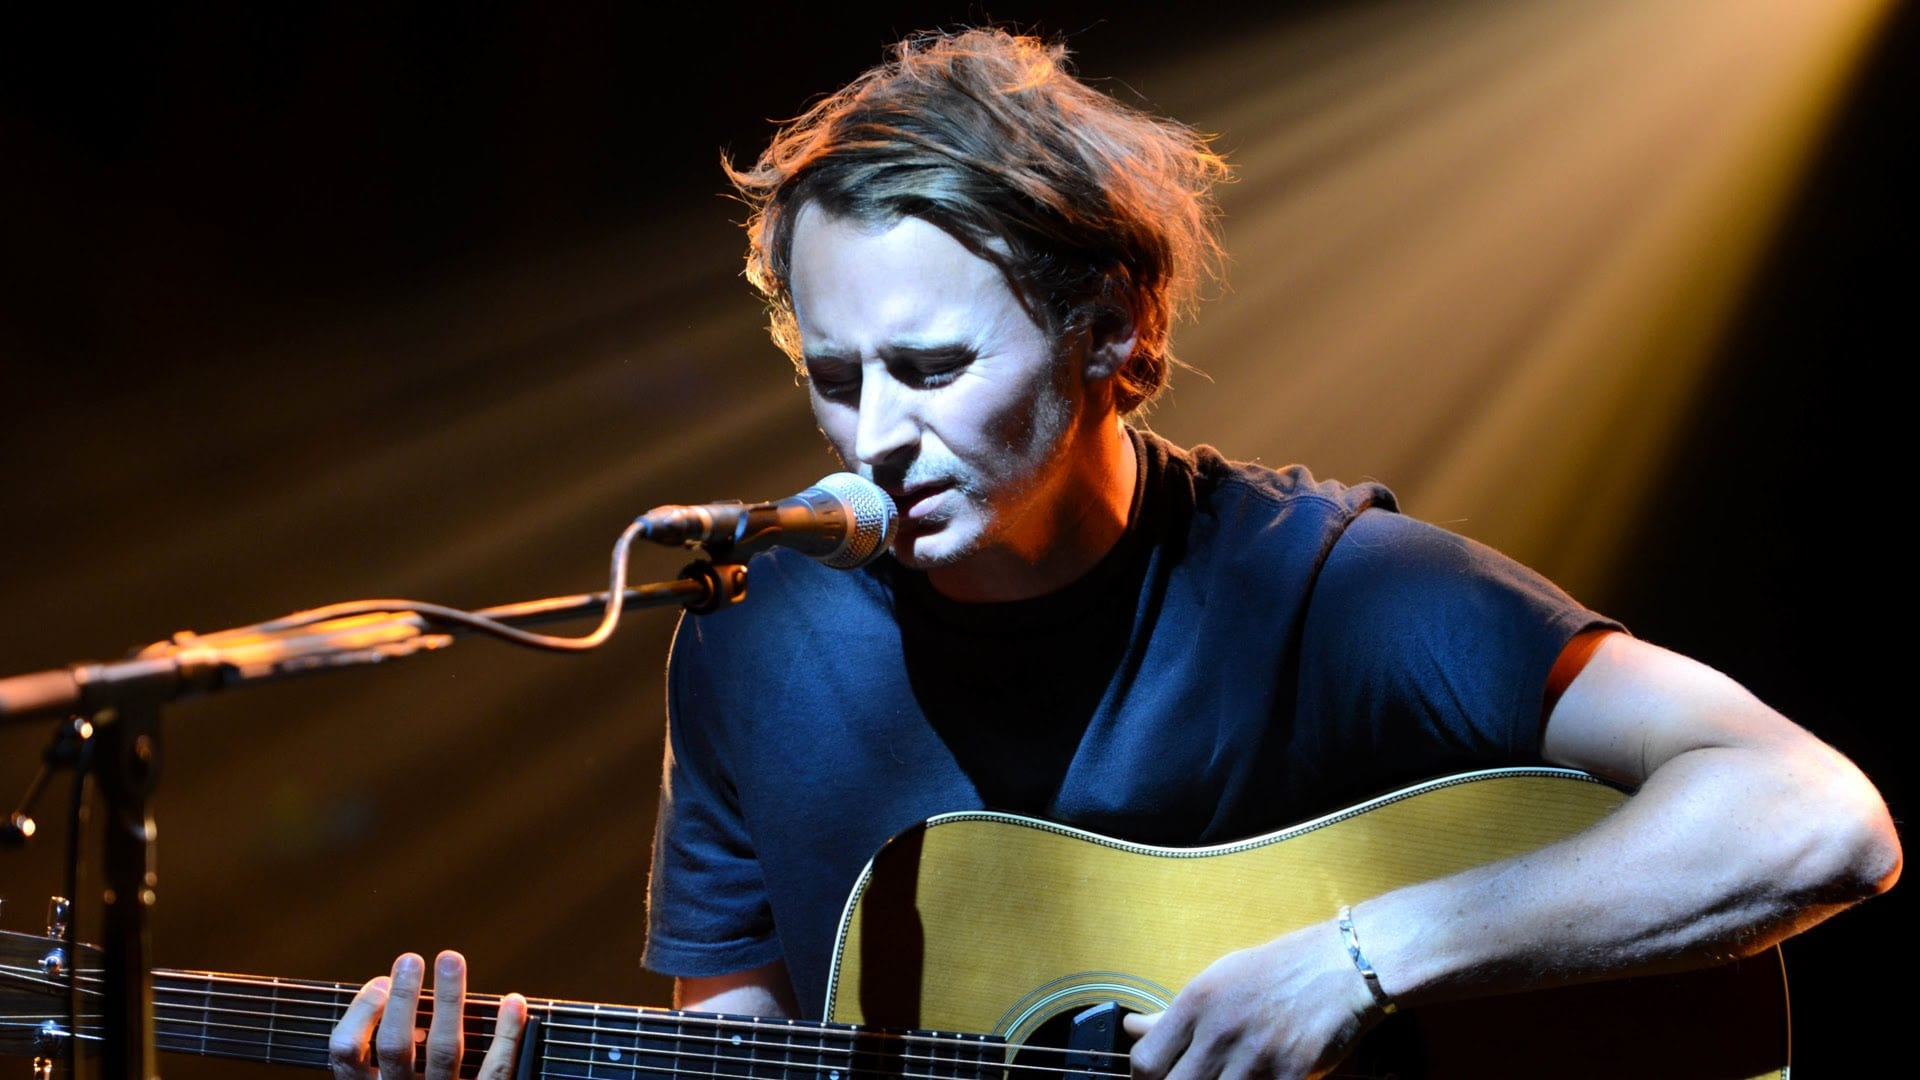 Ben Howard Live on Jools Holland